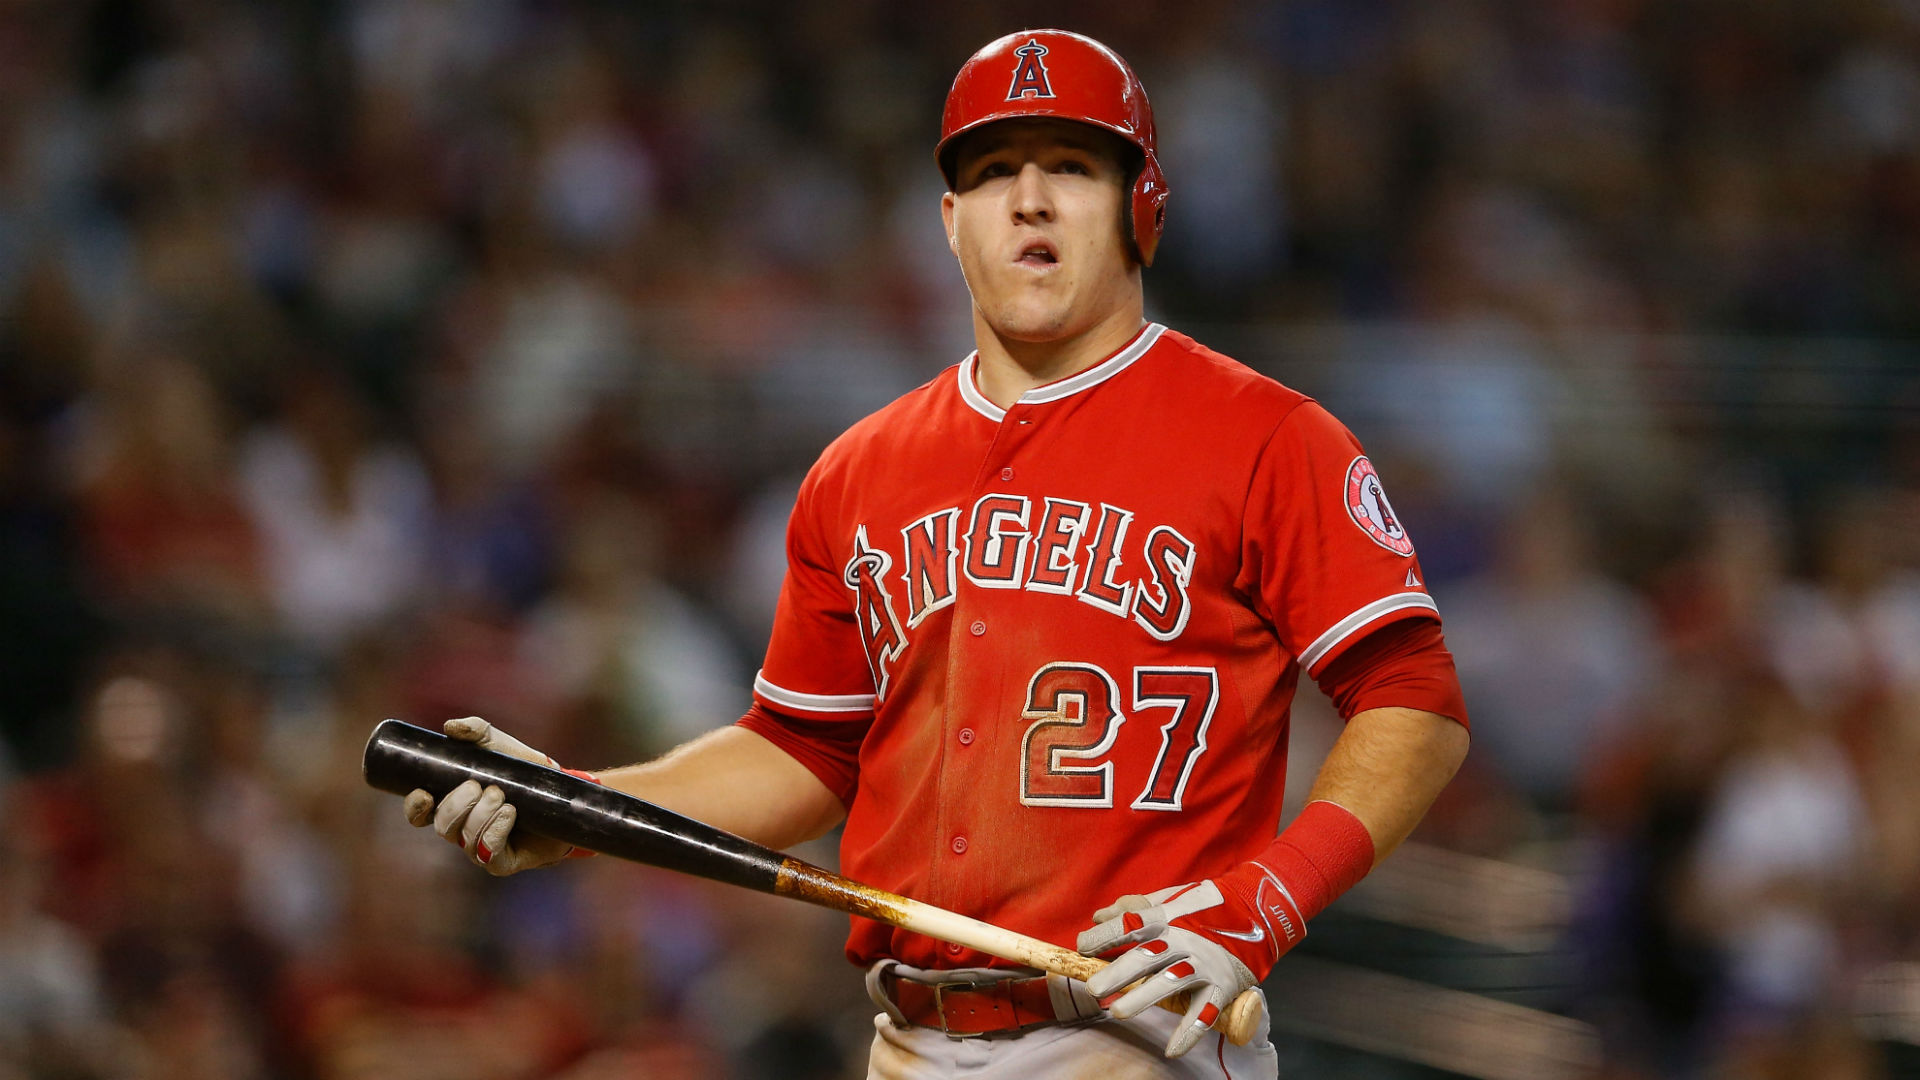 Mike-Trout-070815-GETTY-FTR